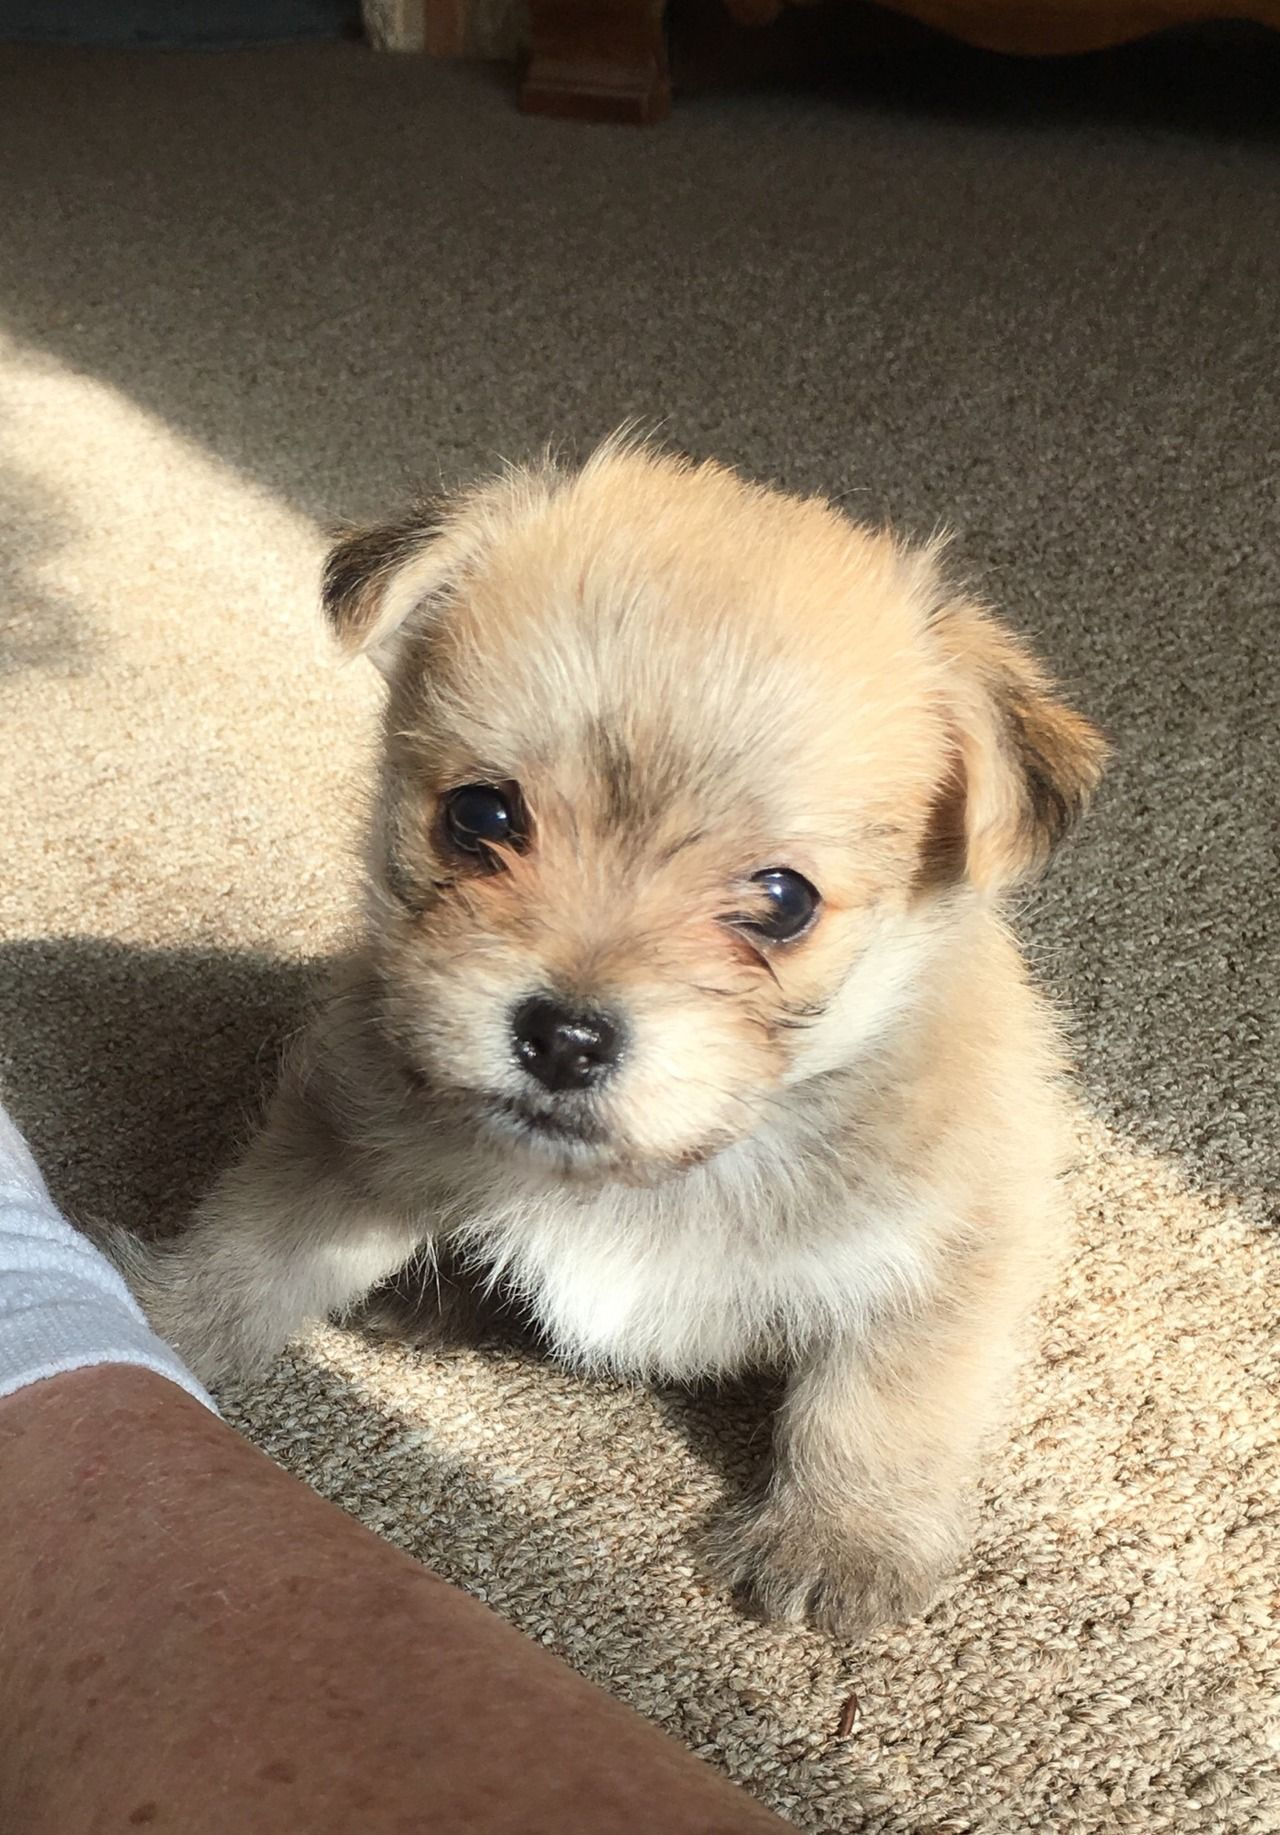 Too Cute Malchi Puppies For Sale Maltese X Chihuahua Mix Click The Link Below To Connect Directly With The Breeder Sel Puppies Puppies For Sale Chihuahua Mix